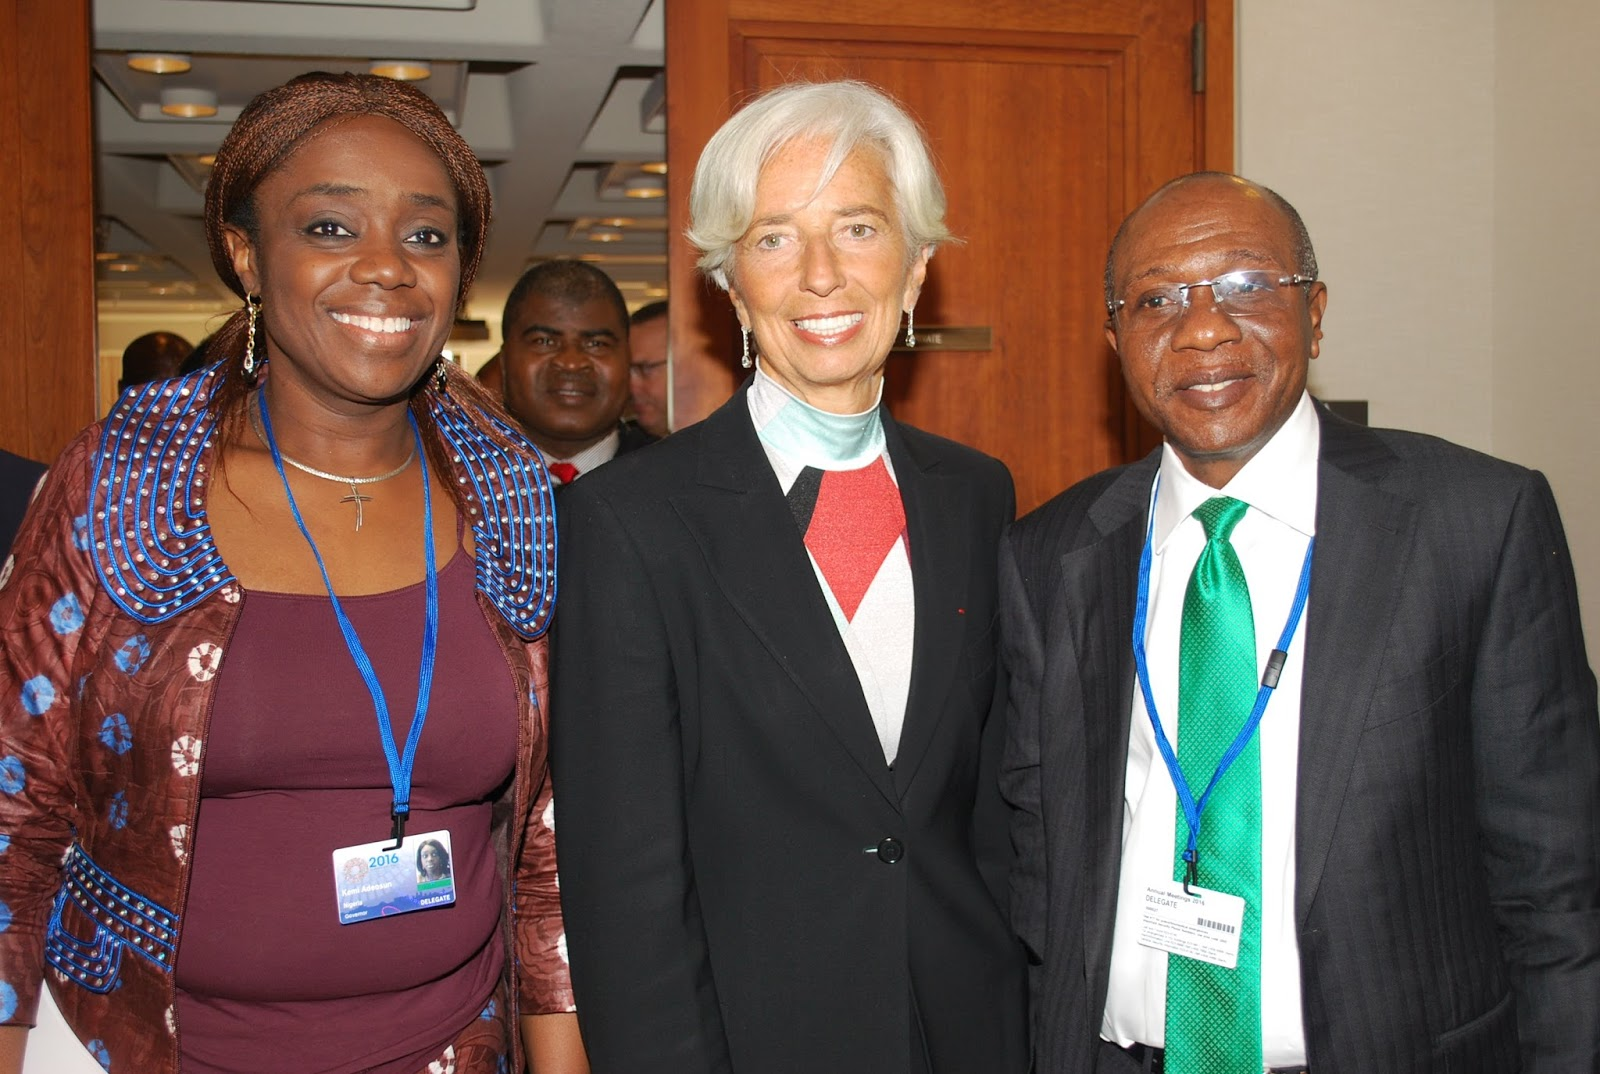 Nigeria's Economic Recovery Plan Gets IMF Endorsement